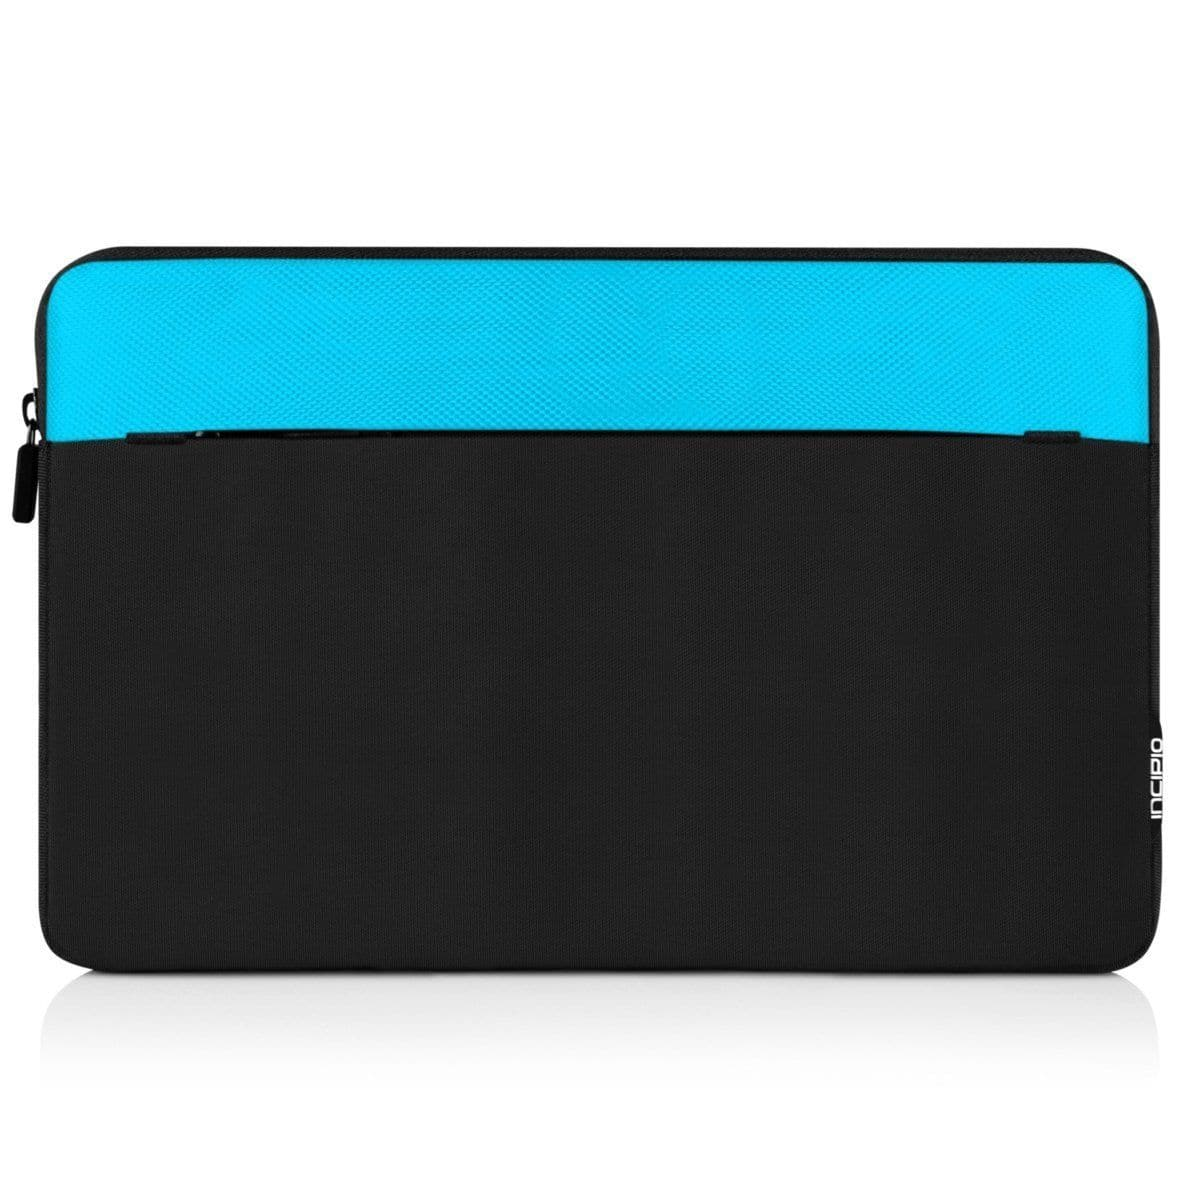 Incipio Nylon Sleeve for Microsoft Surface - Cyan - WiseTech Inc